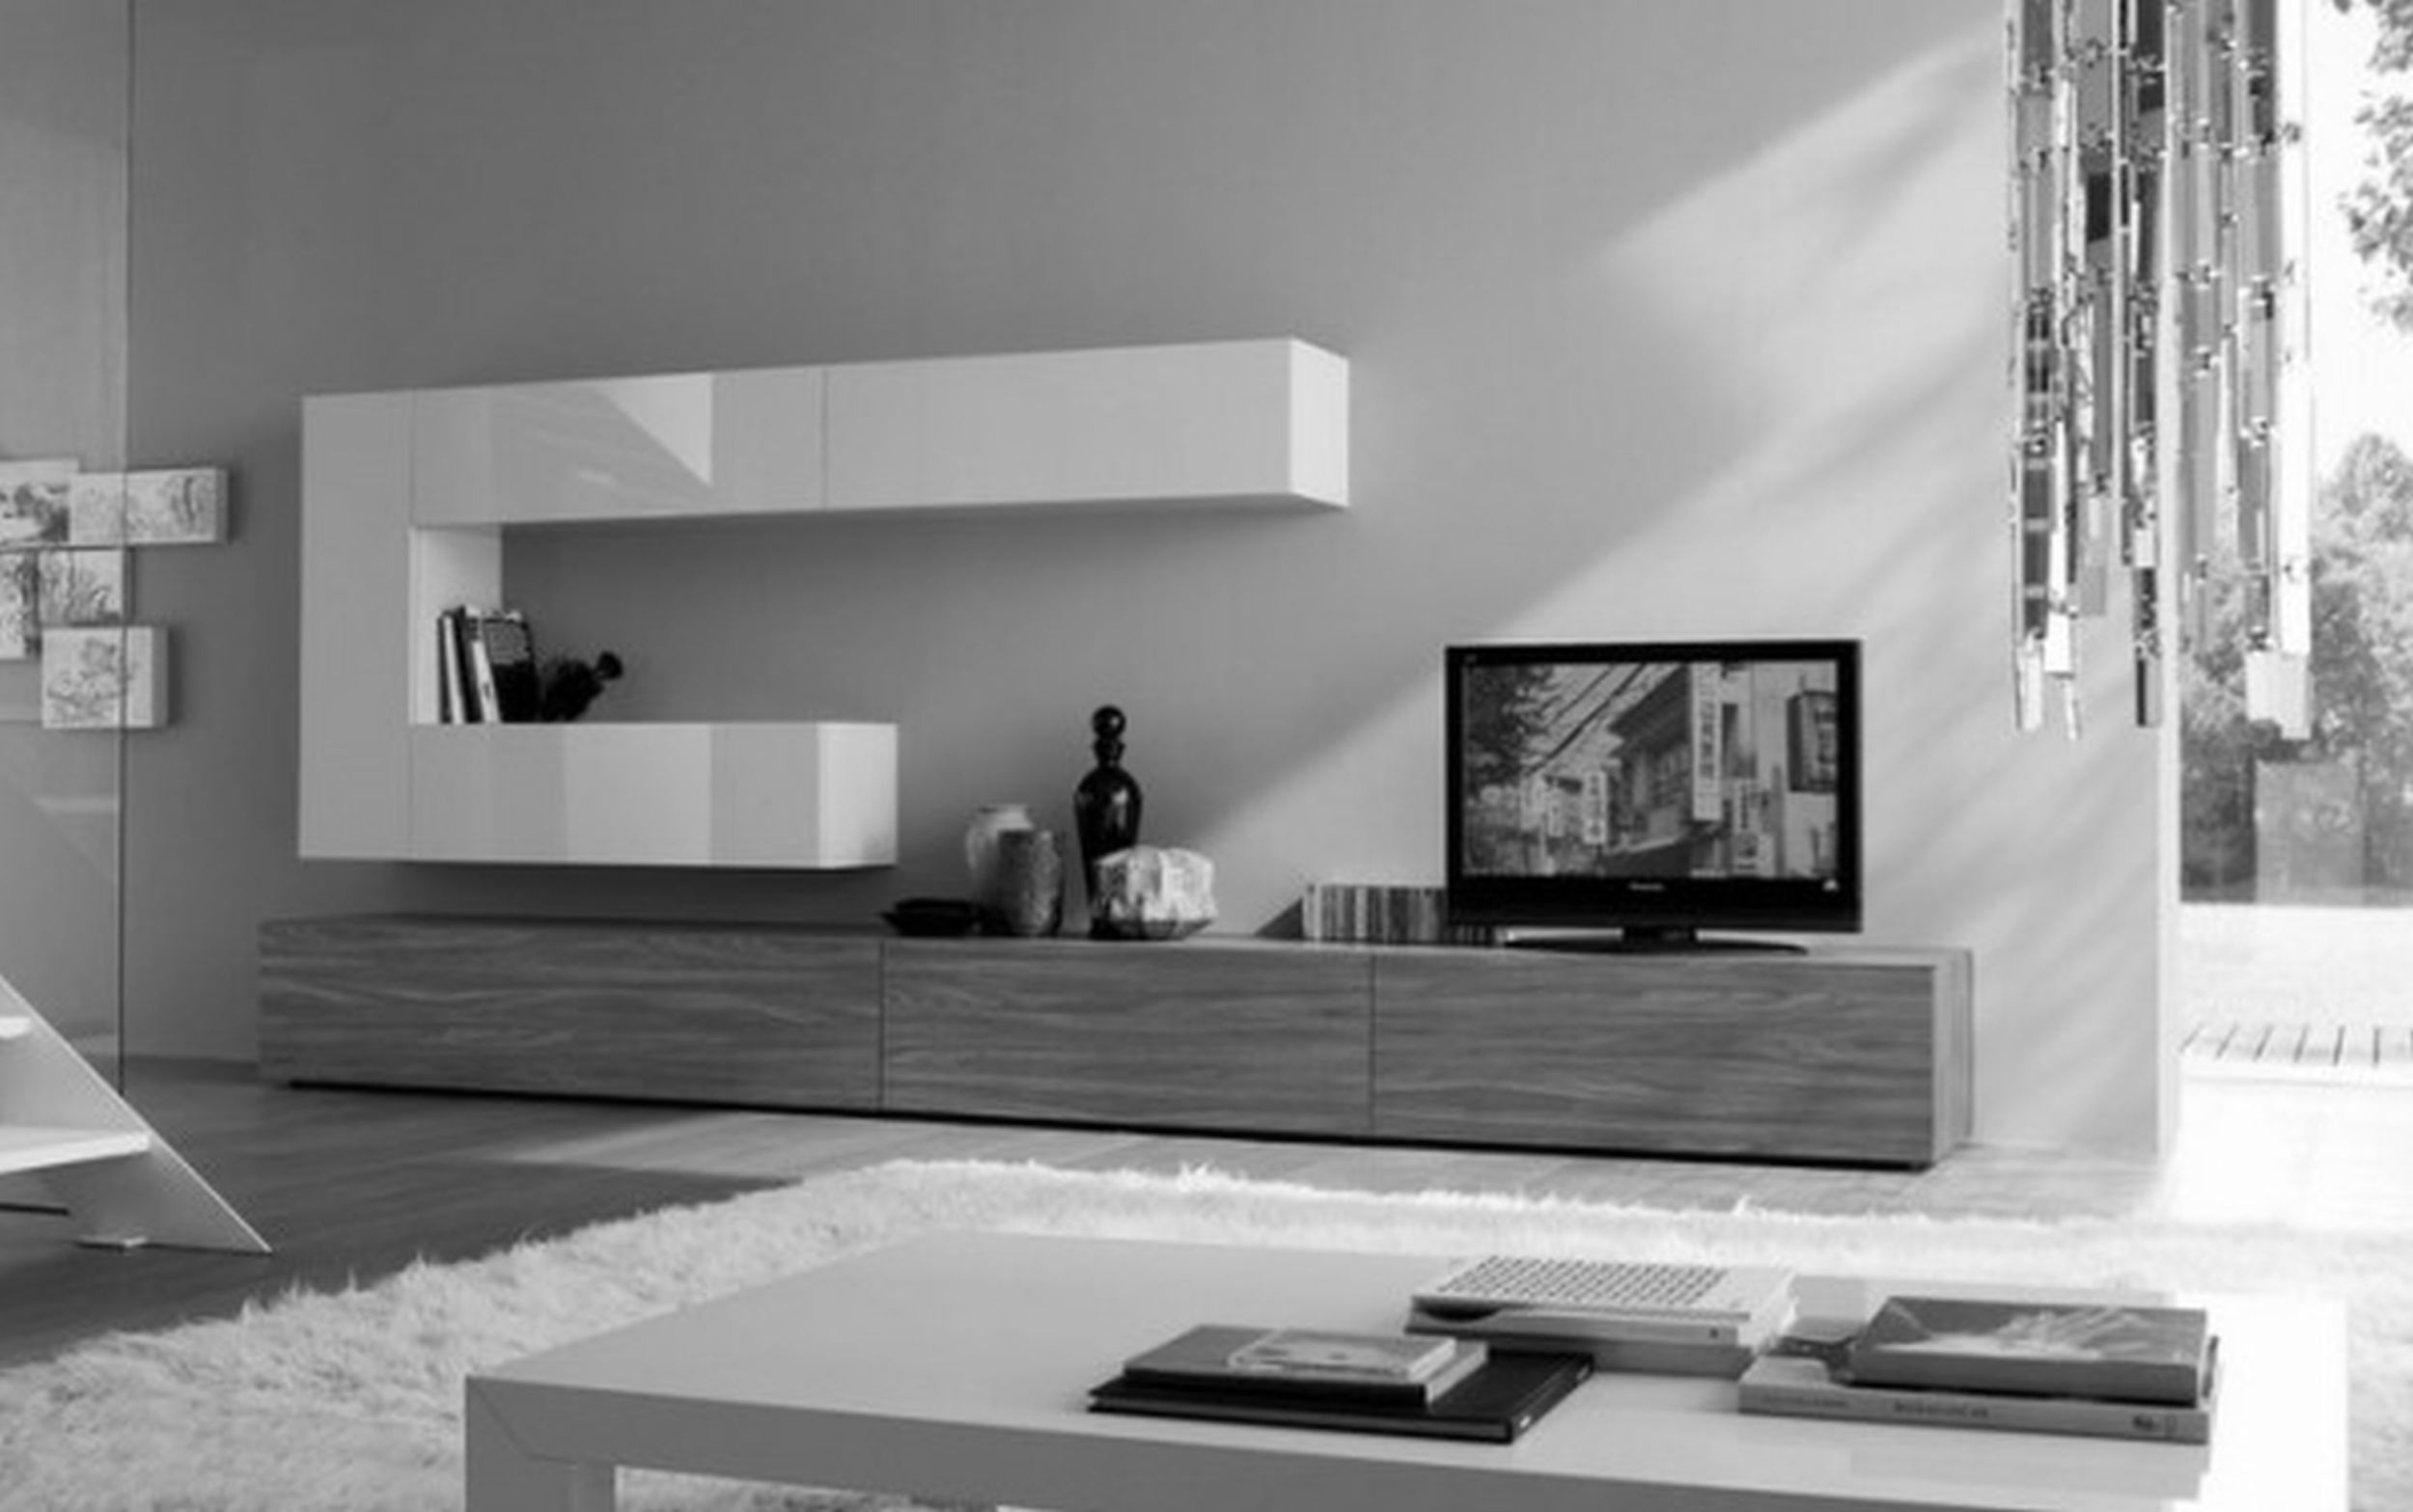 living-room-horrible-black-and-white-interior-decorations-inspiring-decorating-modern-ideas-with-decor-feat-wooden-stand-painting-decors-keen-witted.jpg